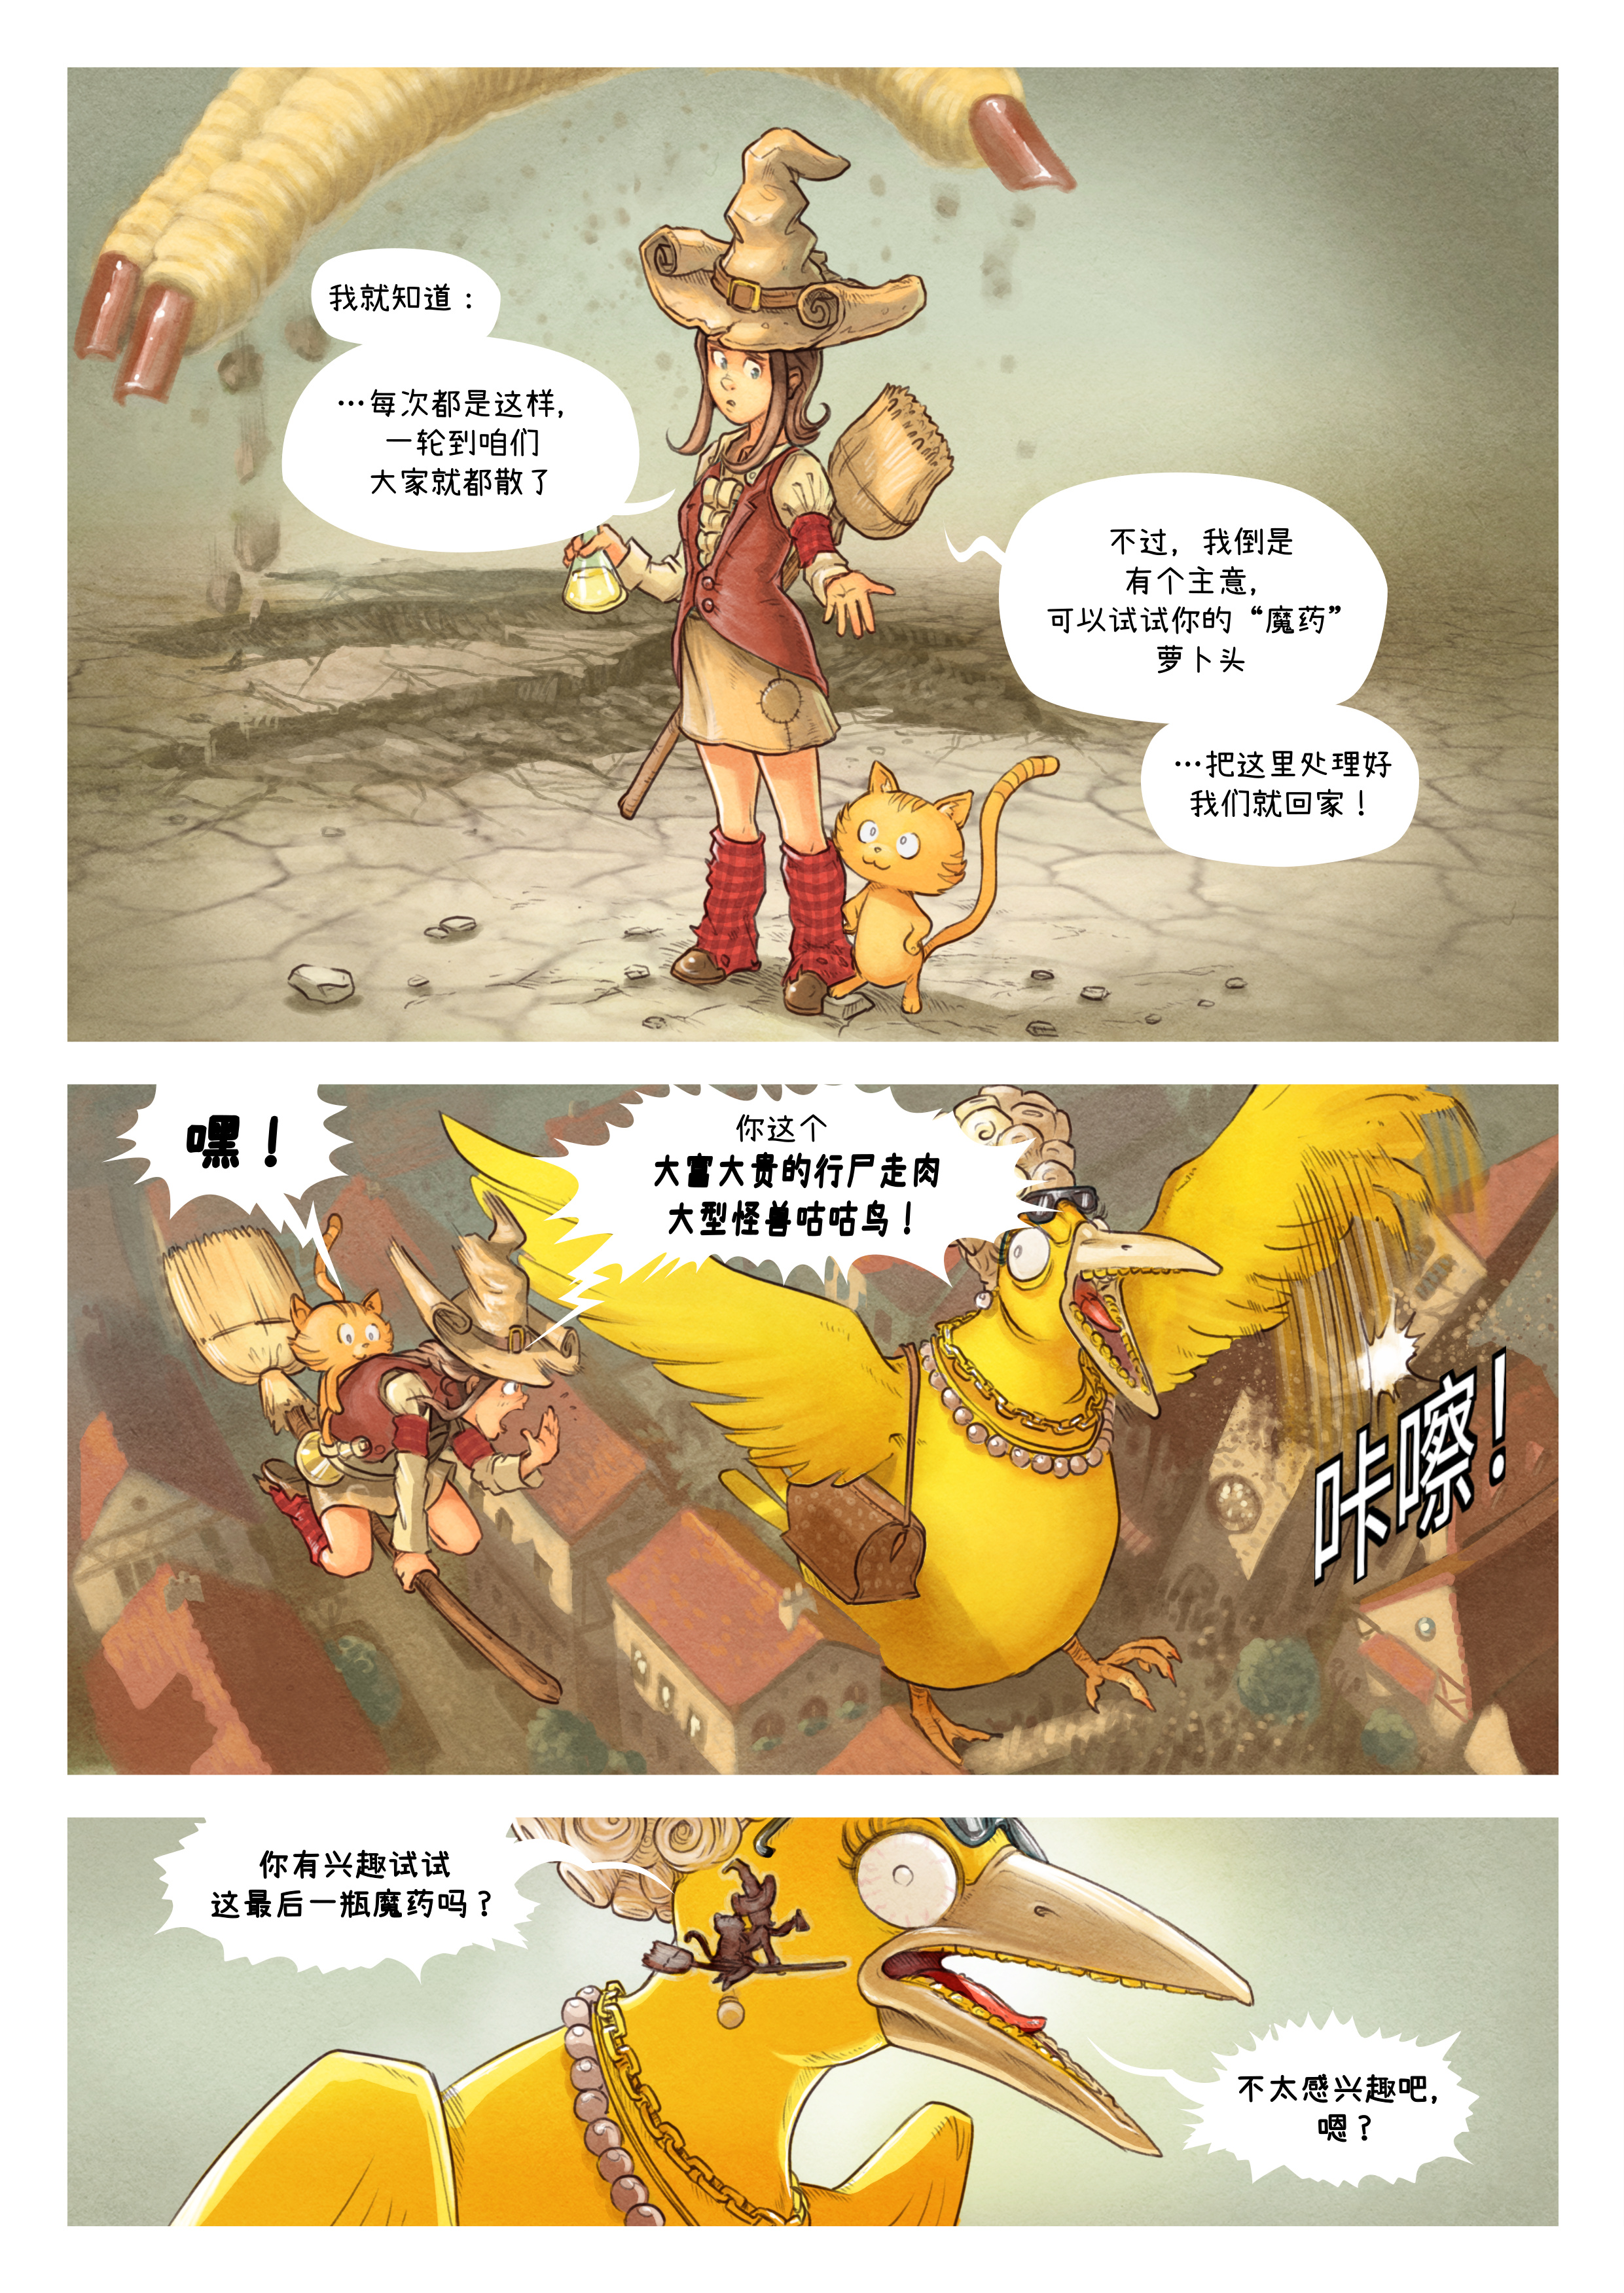 A webcomic page of Pepper&Carrot, 漫画全集 6 [cn], 页面 8